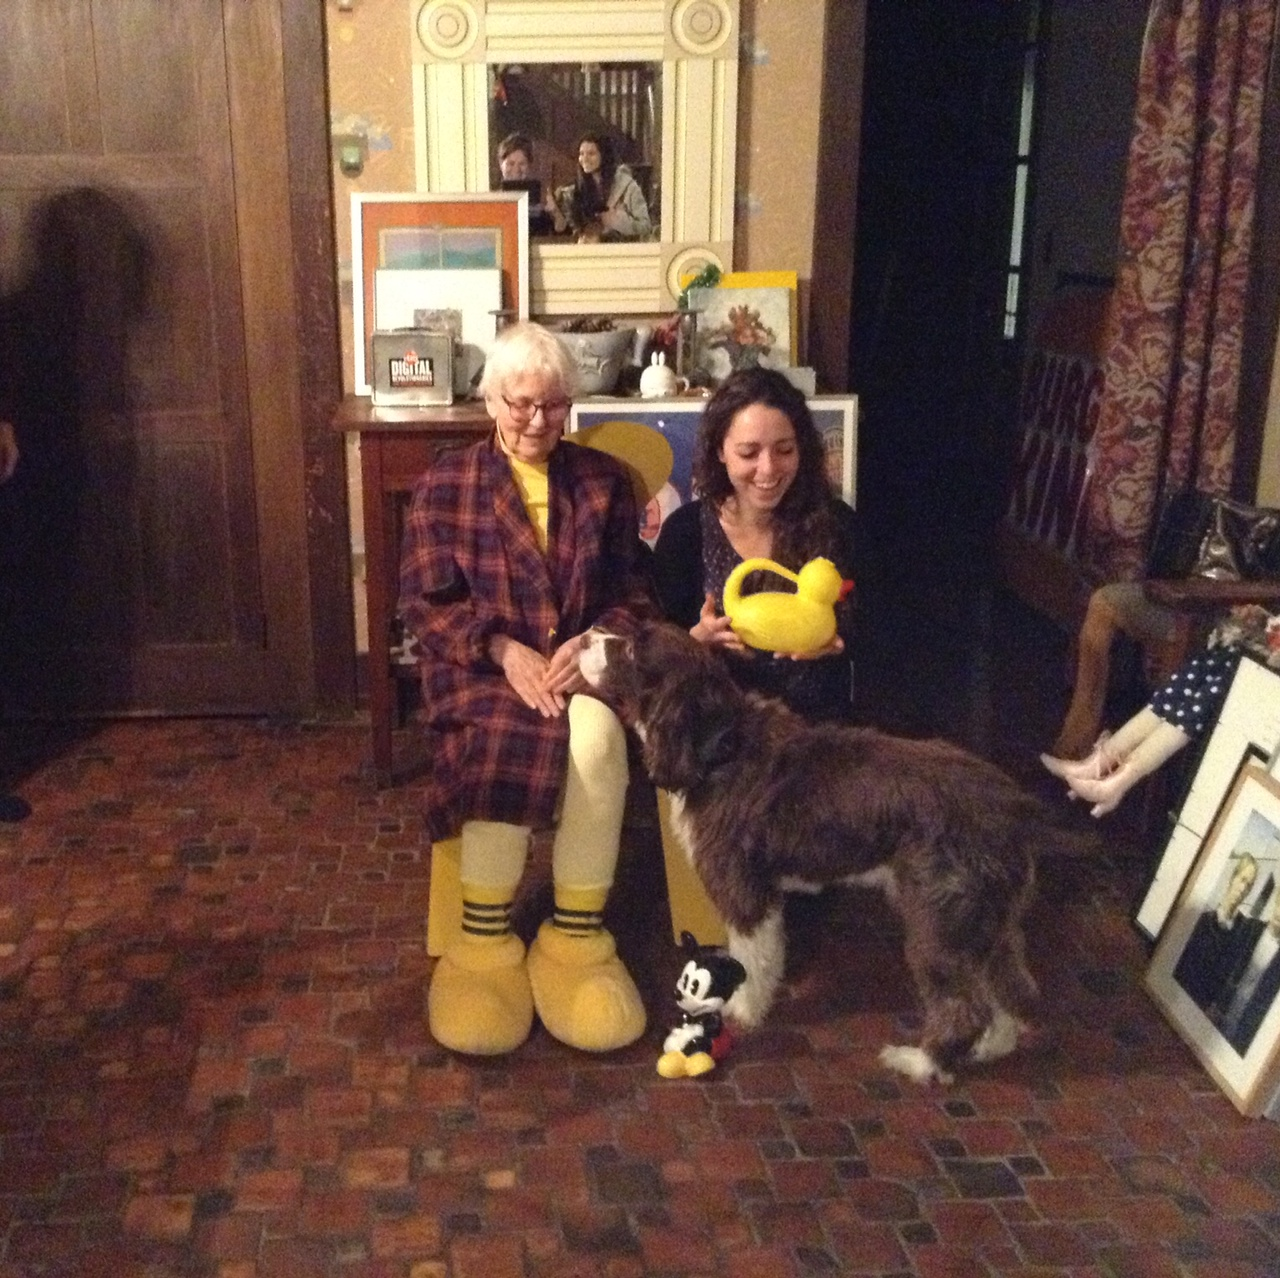 Thanksgiving Day, 24 novembre 2016. Rosa Sessa con Denise Scott Brown e il cane Aalto. Photo Anita Naughton